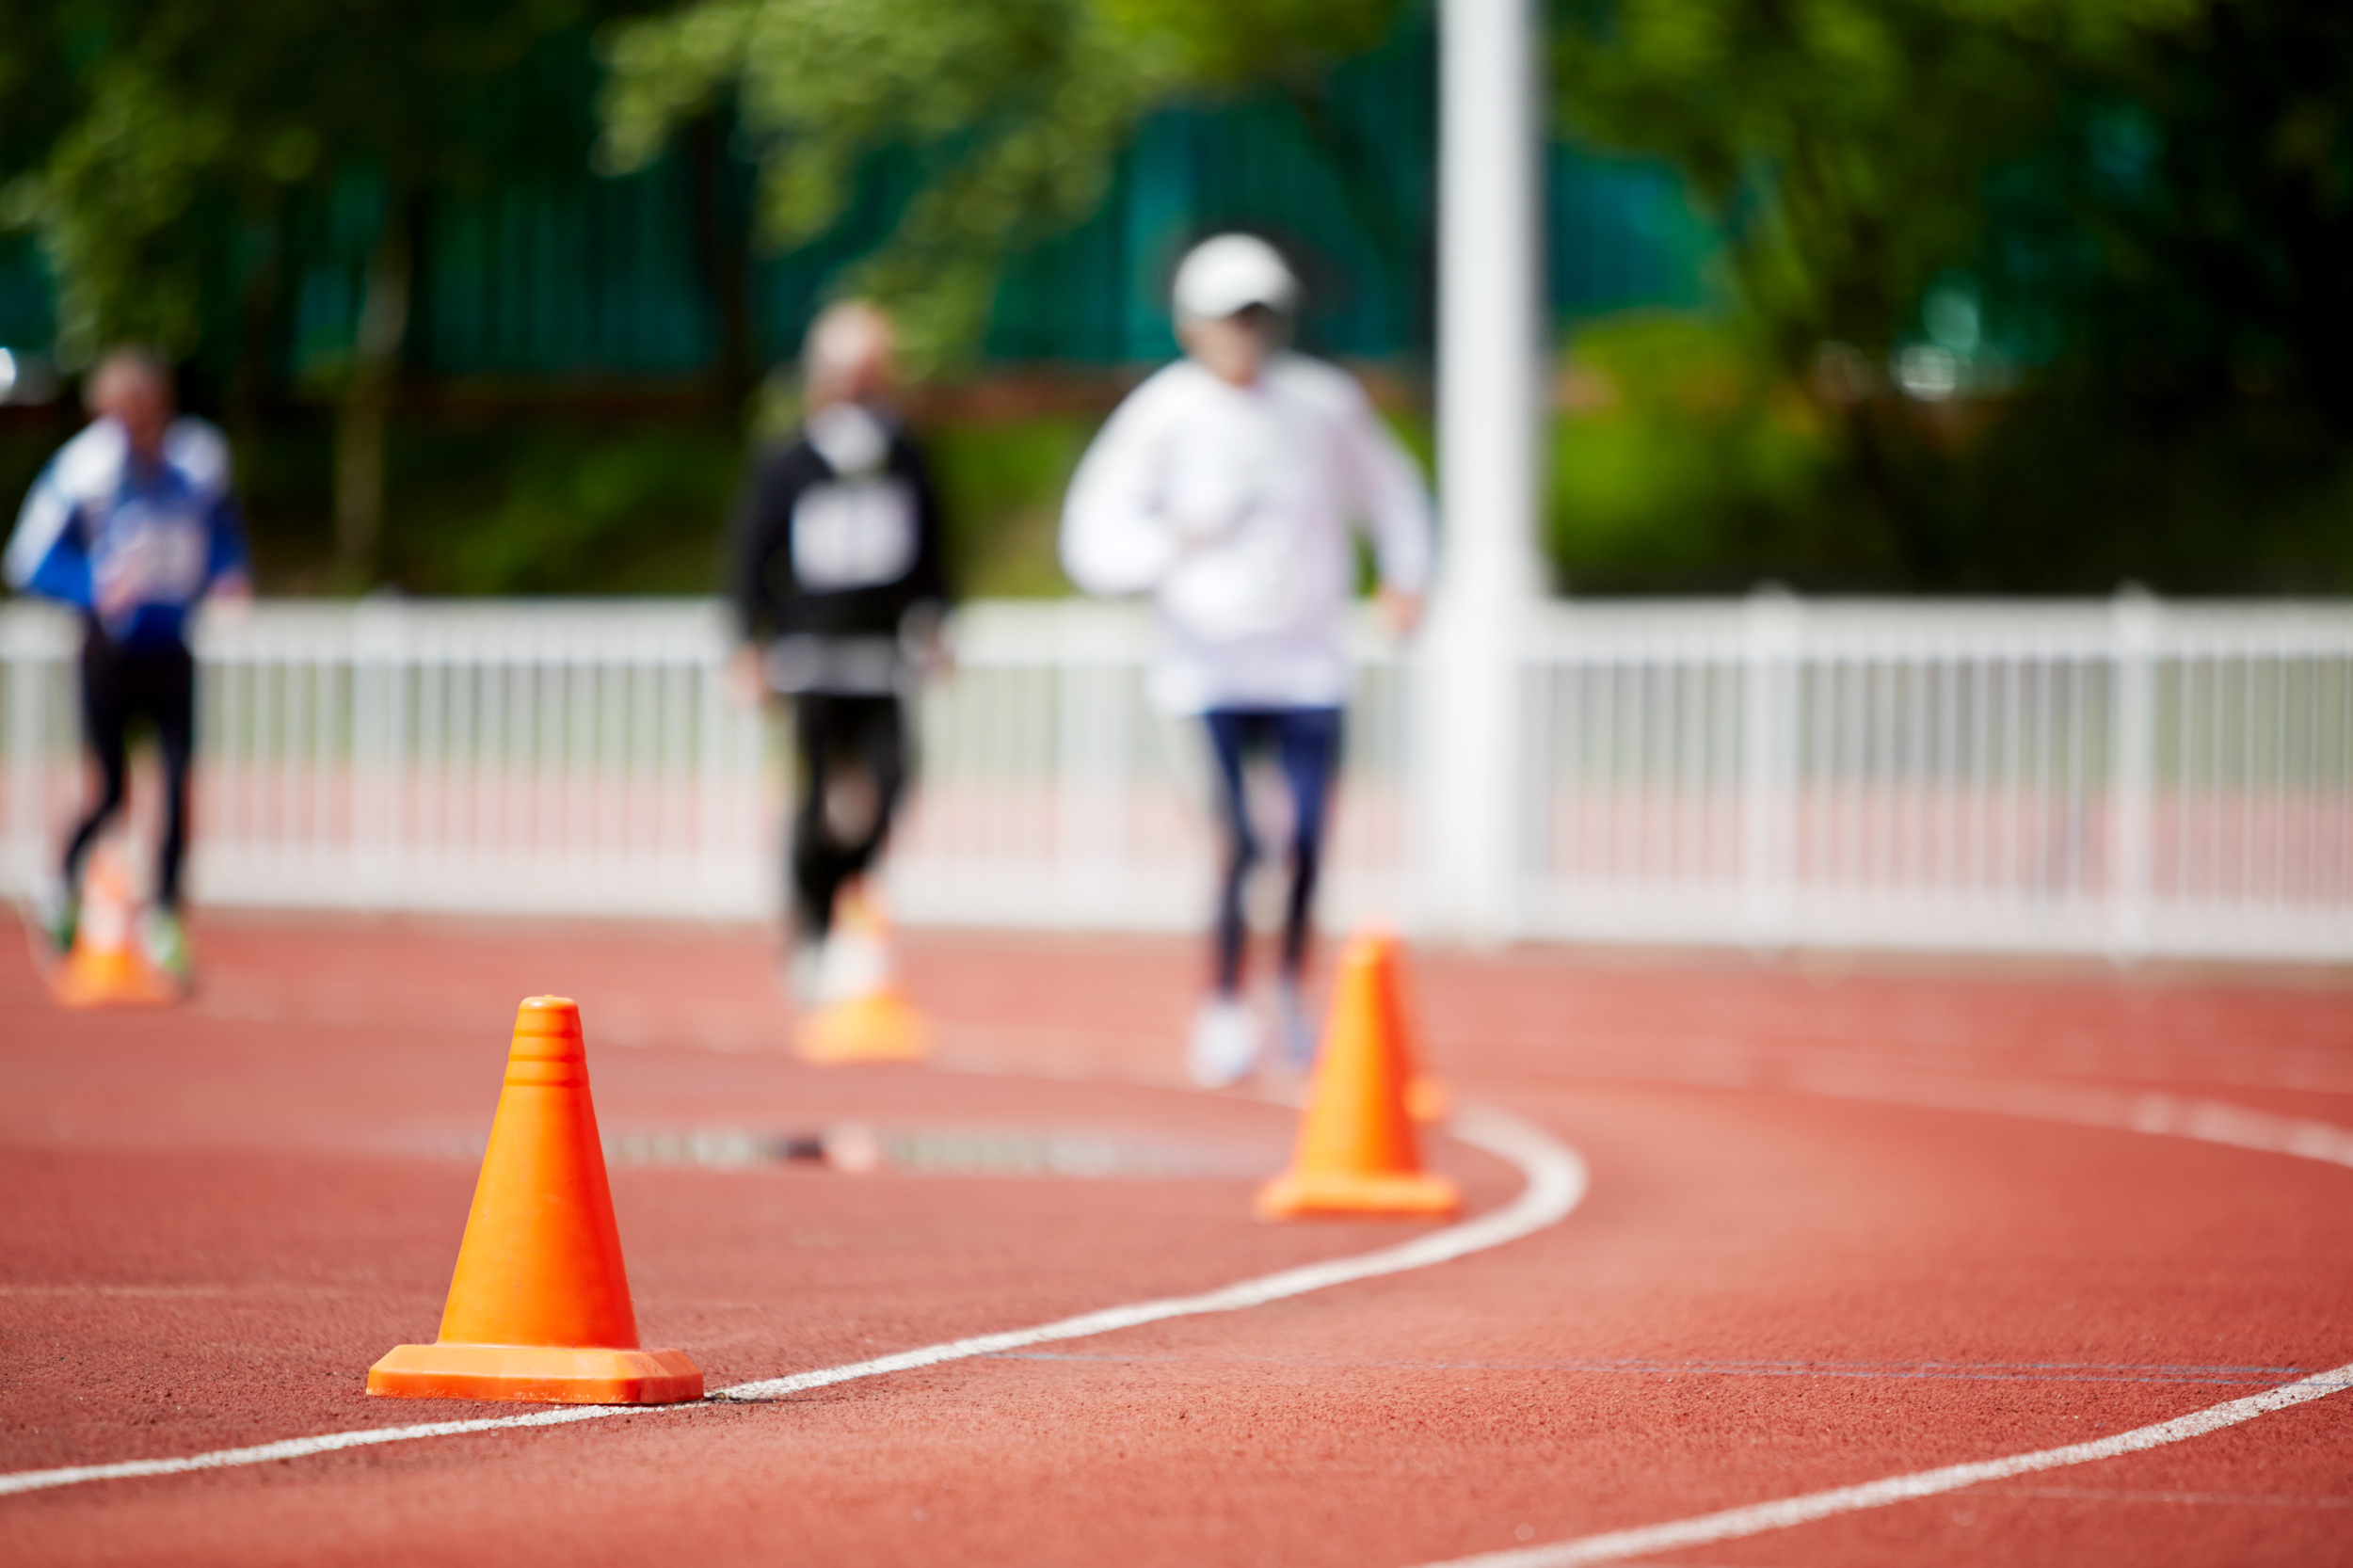 Focusing on an object while you're walking or running--like cones on the street, or a building a few blocks away--can make exercise seem a little easier.